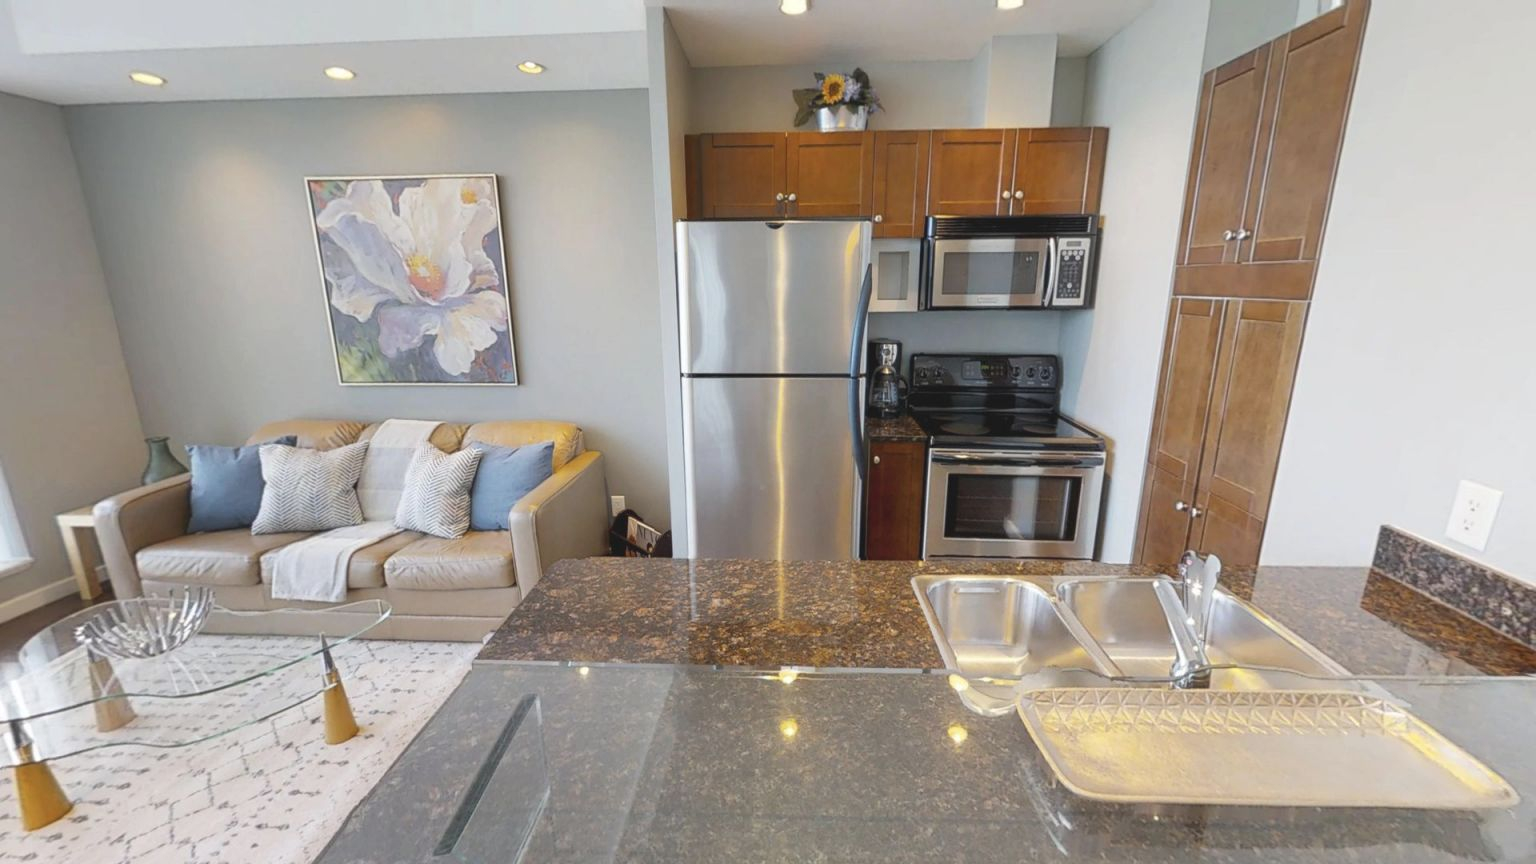 Waterclub J – One Bedroom Furnished Apartment intended for Luxury One Bedroom Furnished Apartment